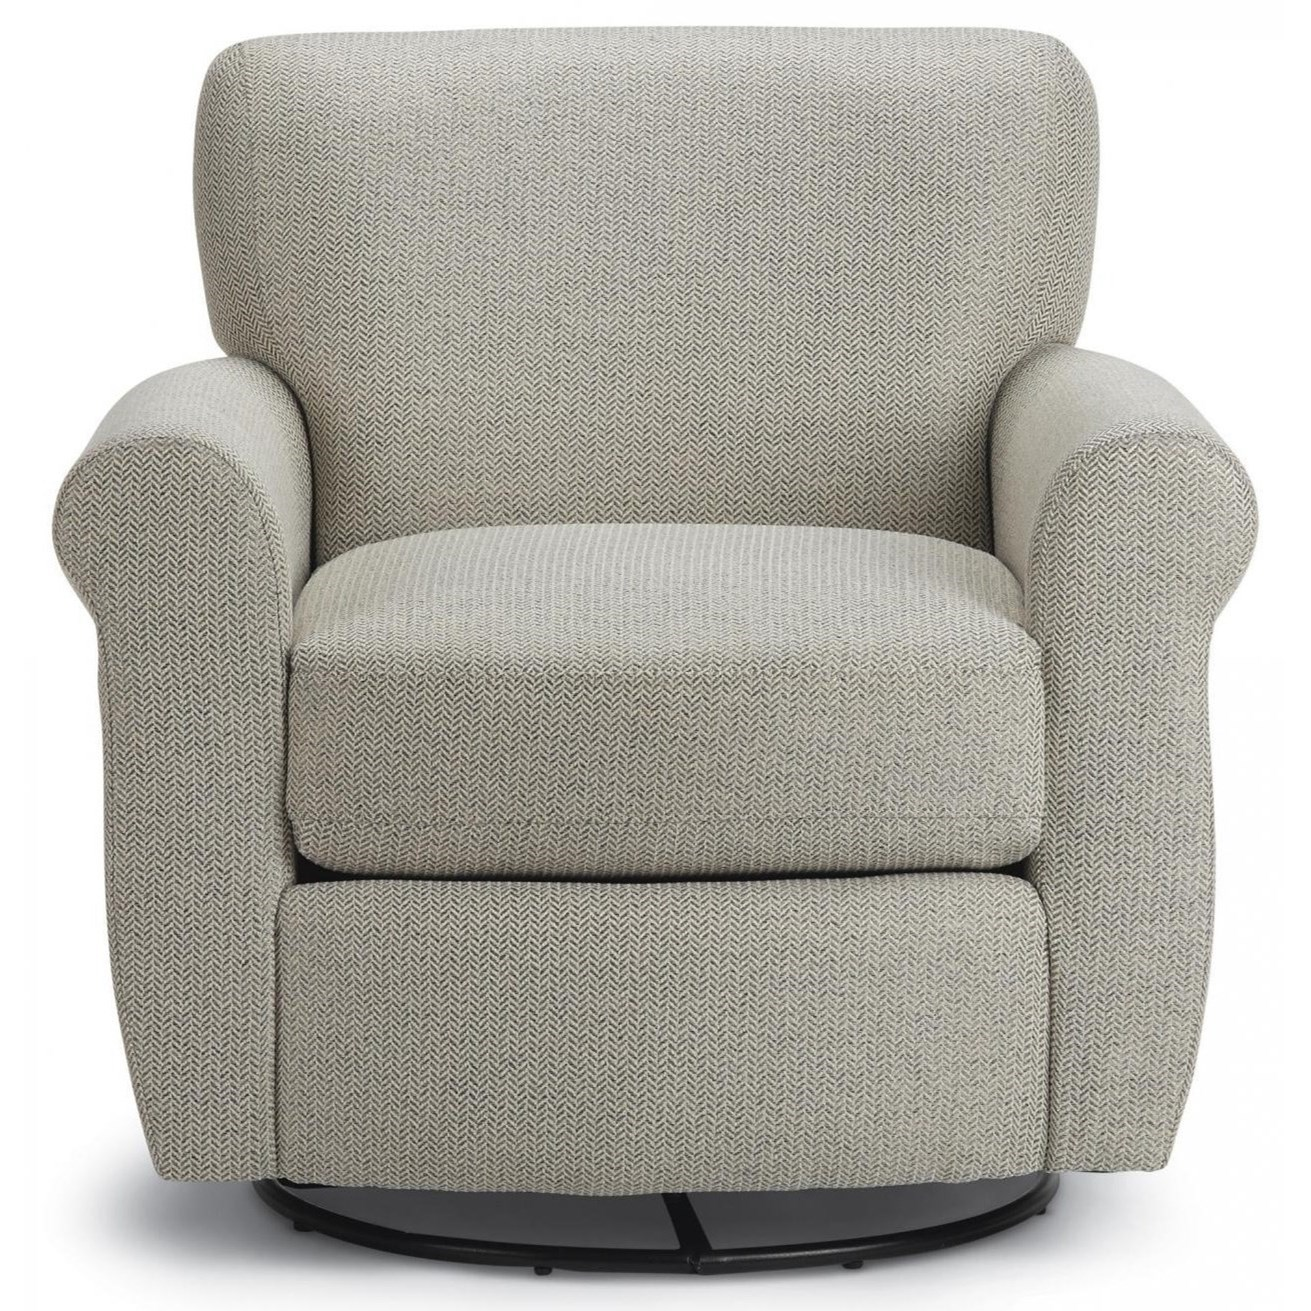 Gemily Swivel Glider Chair by Best Home Furnishings at Walker's Furniture